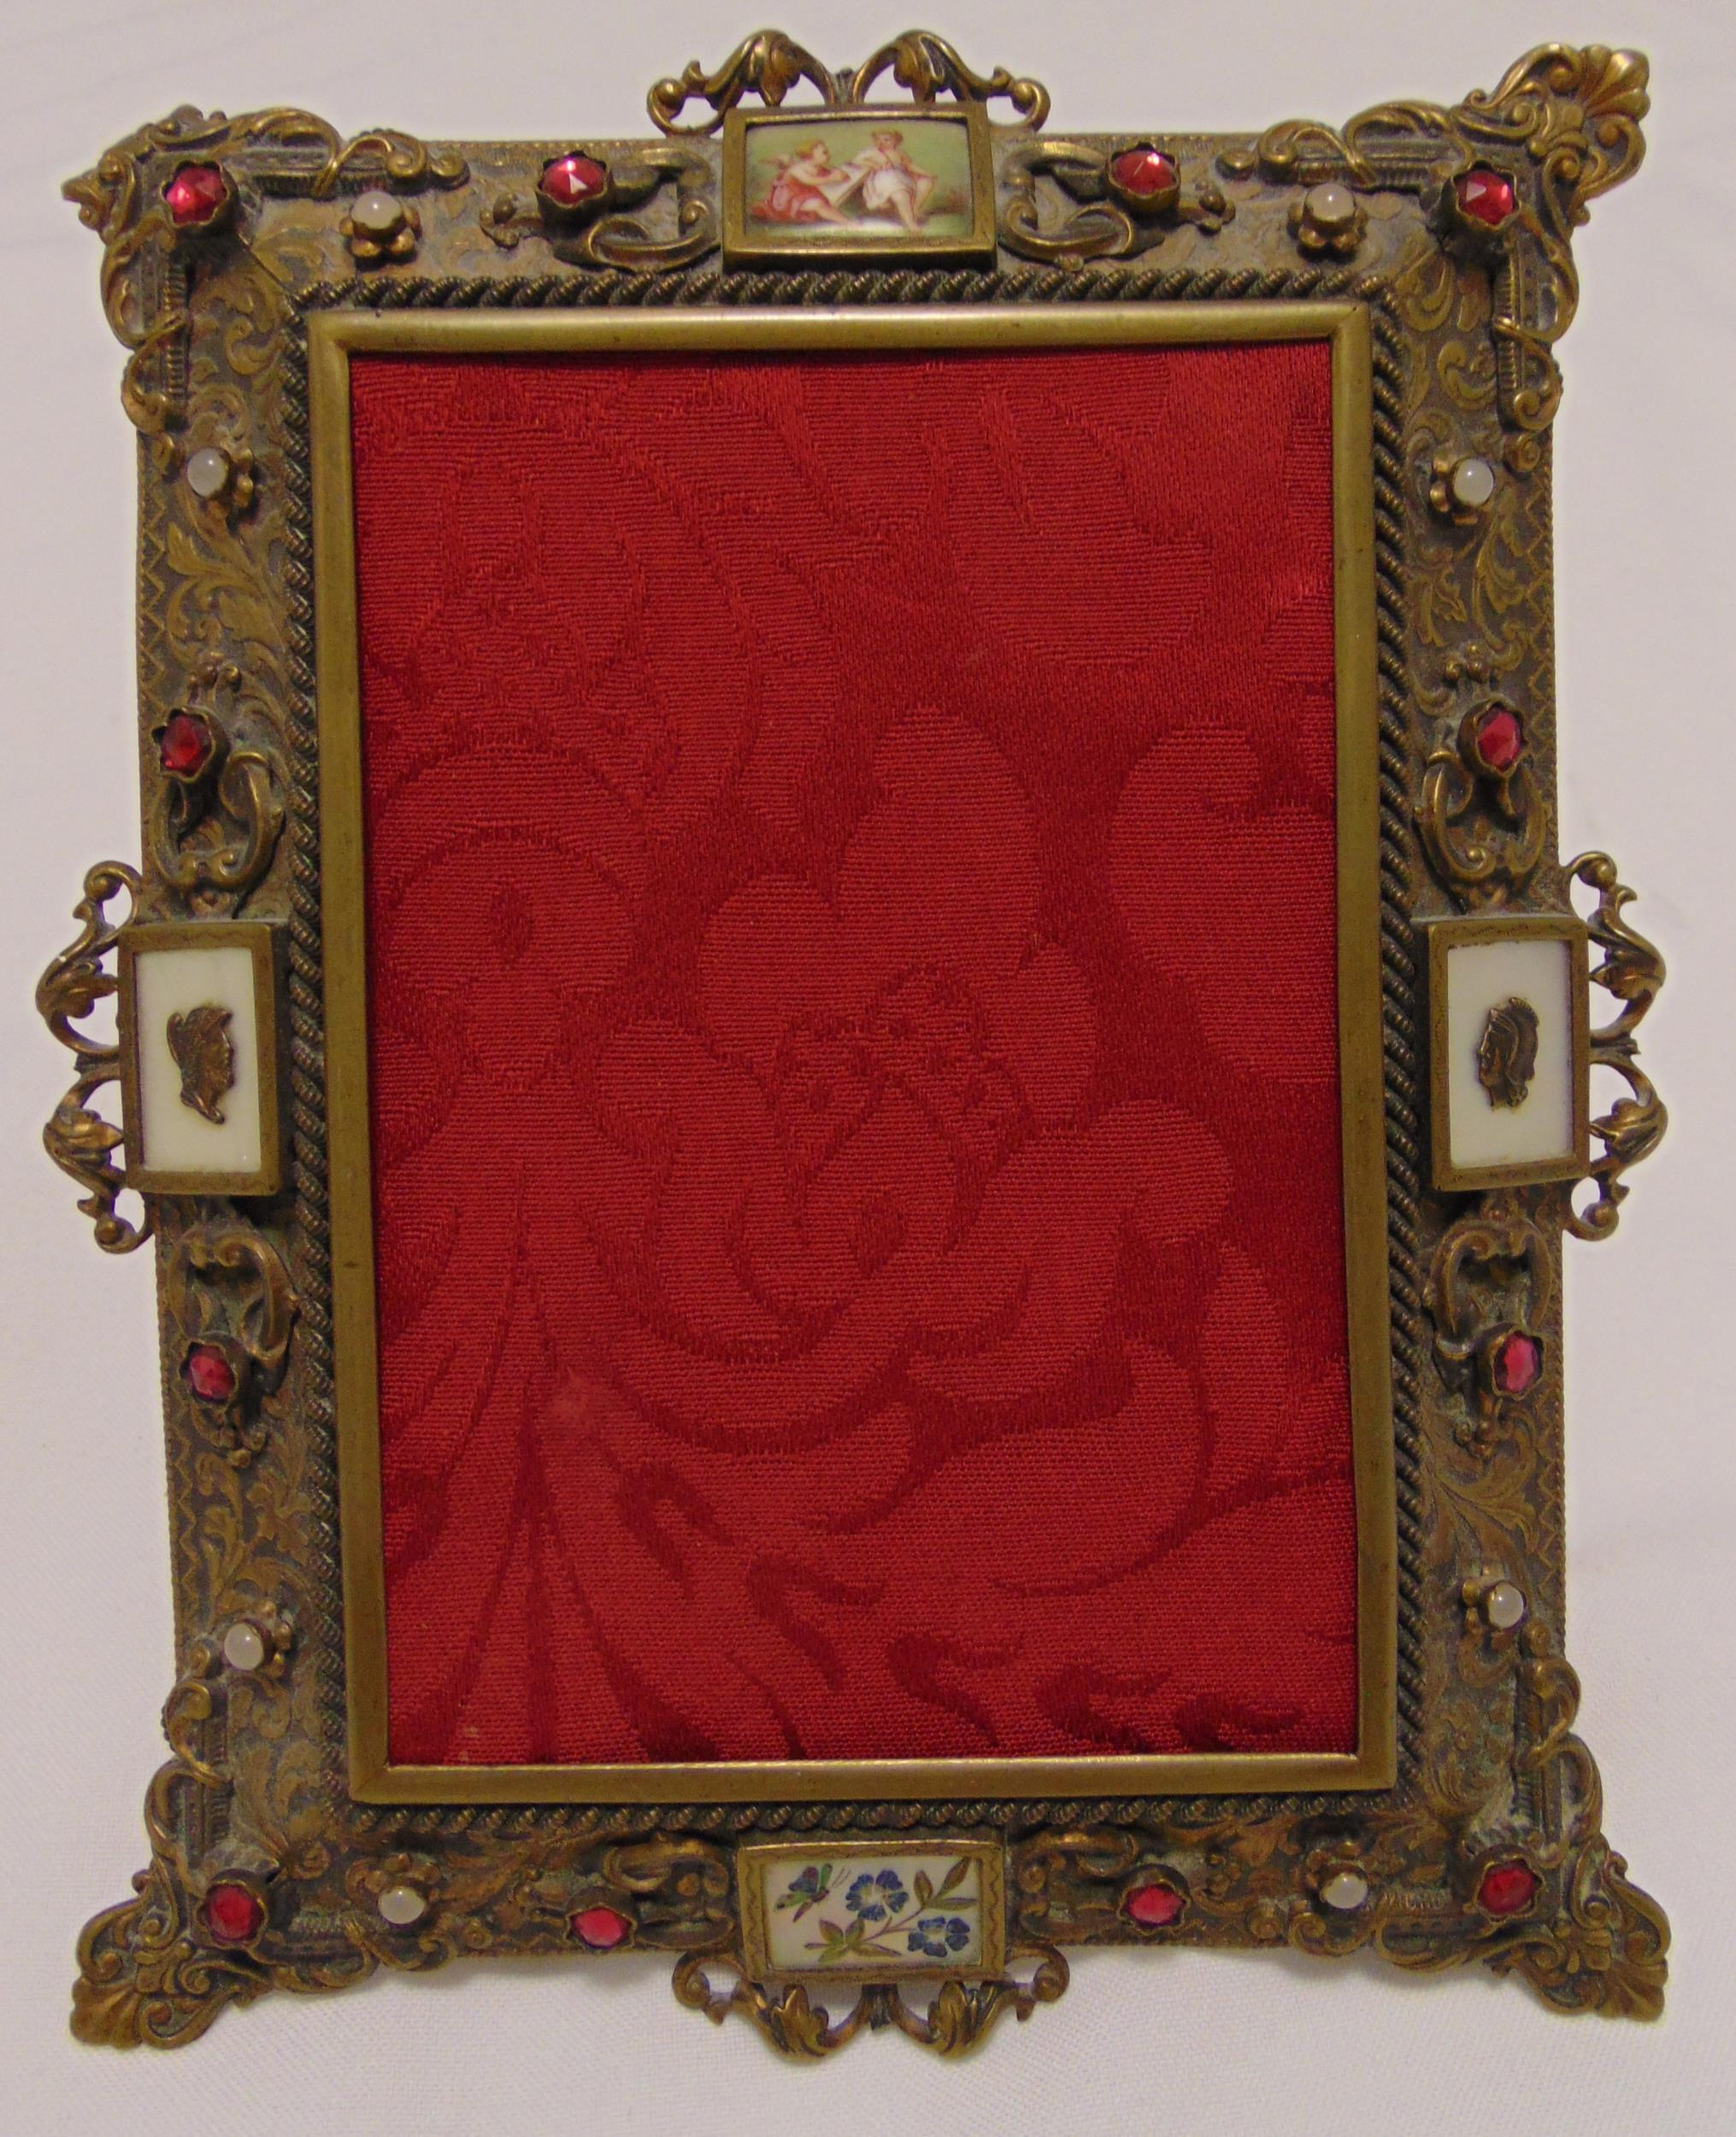 A 19th century French rectangular photograph frame decorated with jewels and vignettes, 19 x 15cm